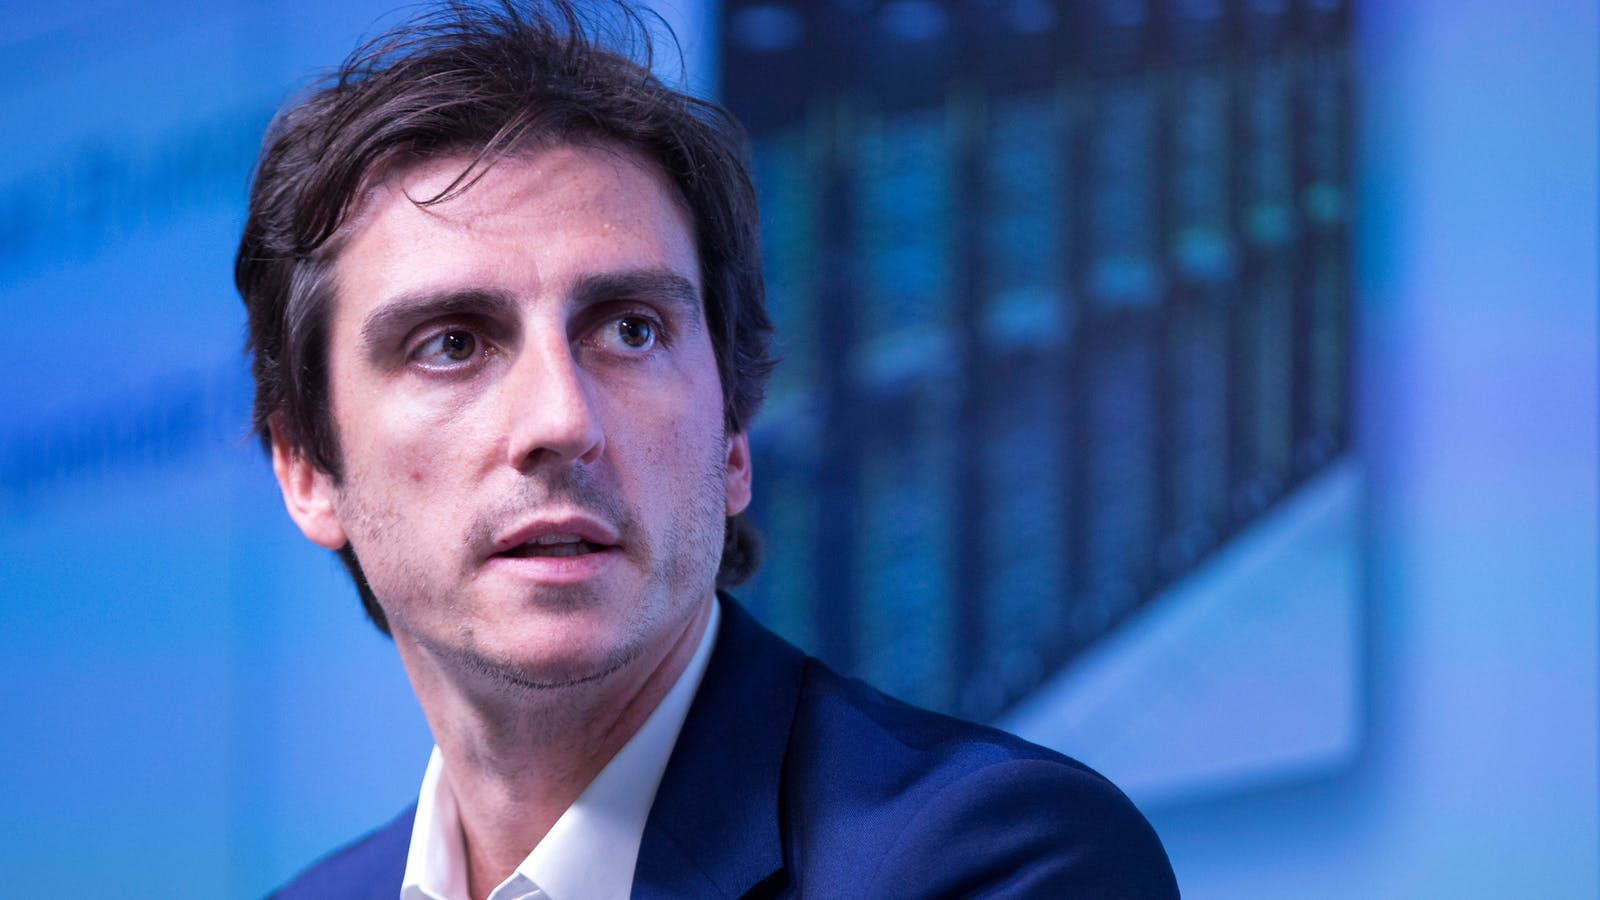 Facebook at Work's director Julien Codorniou. Photo by Bloomberg.